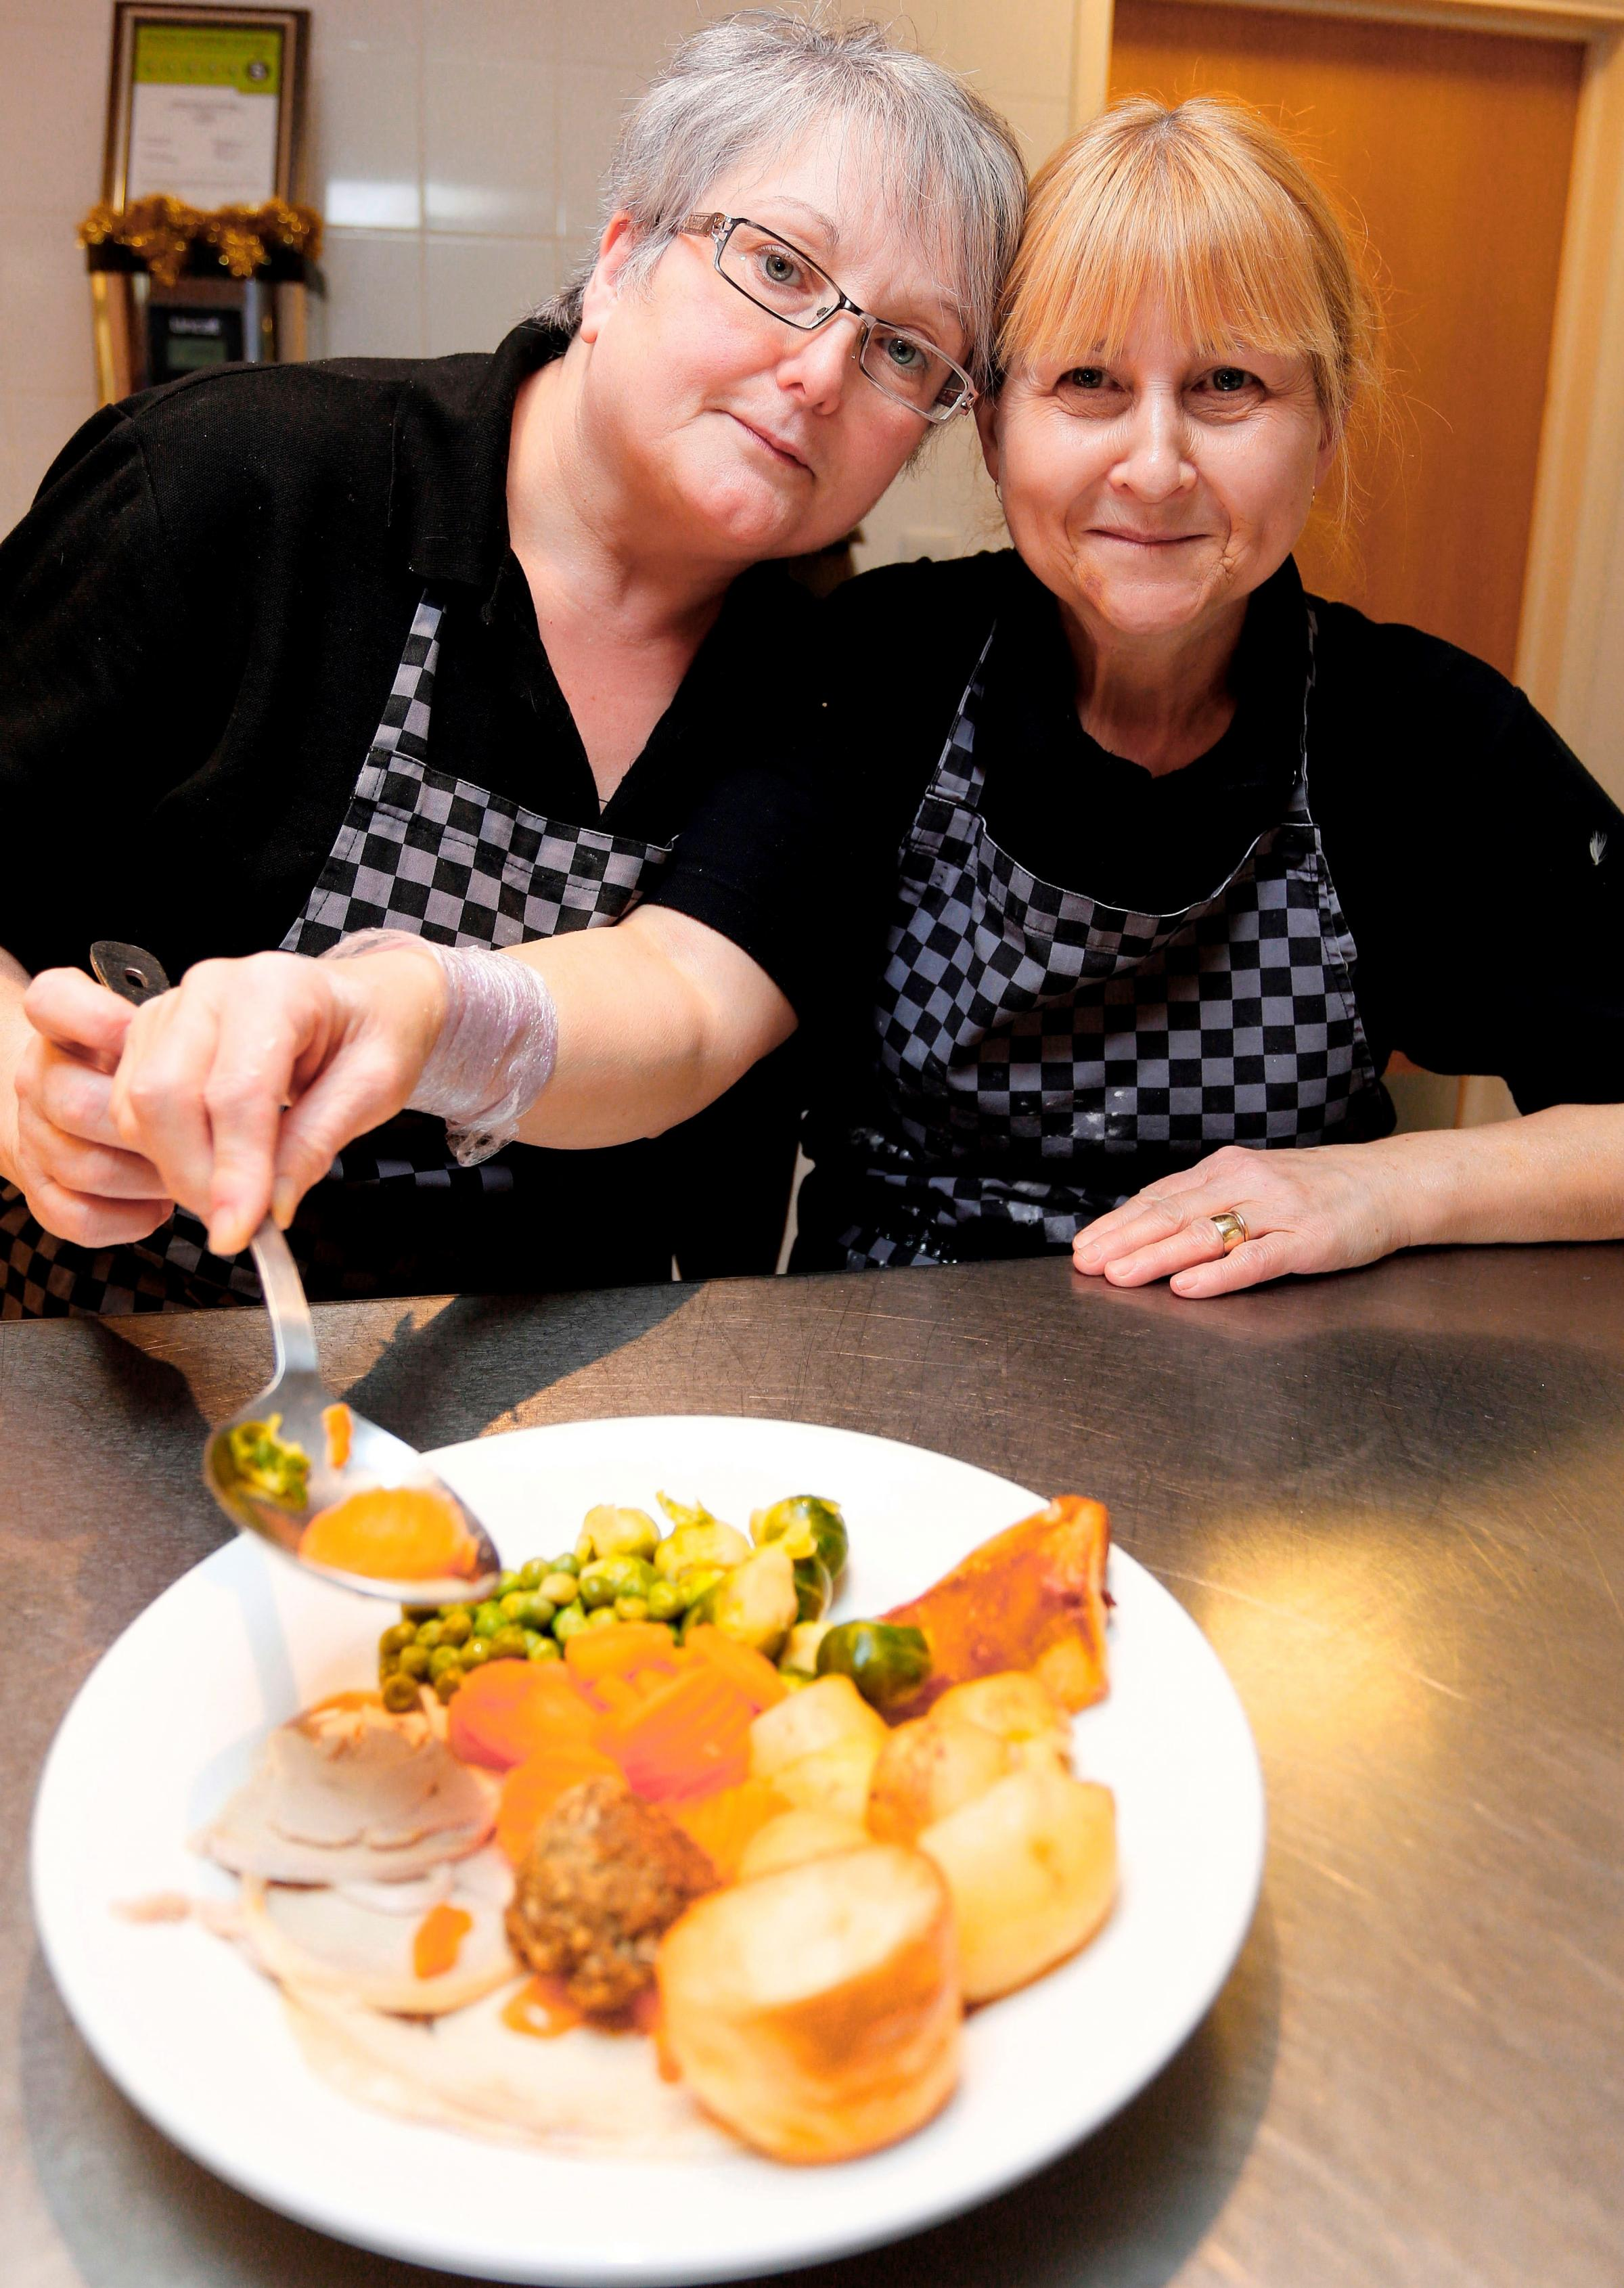 Beacon Centre catering assistants Elaine Hampson and Alison White get ready to dish out VIP meals